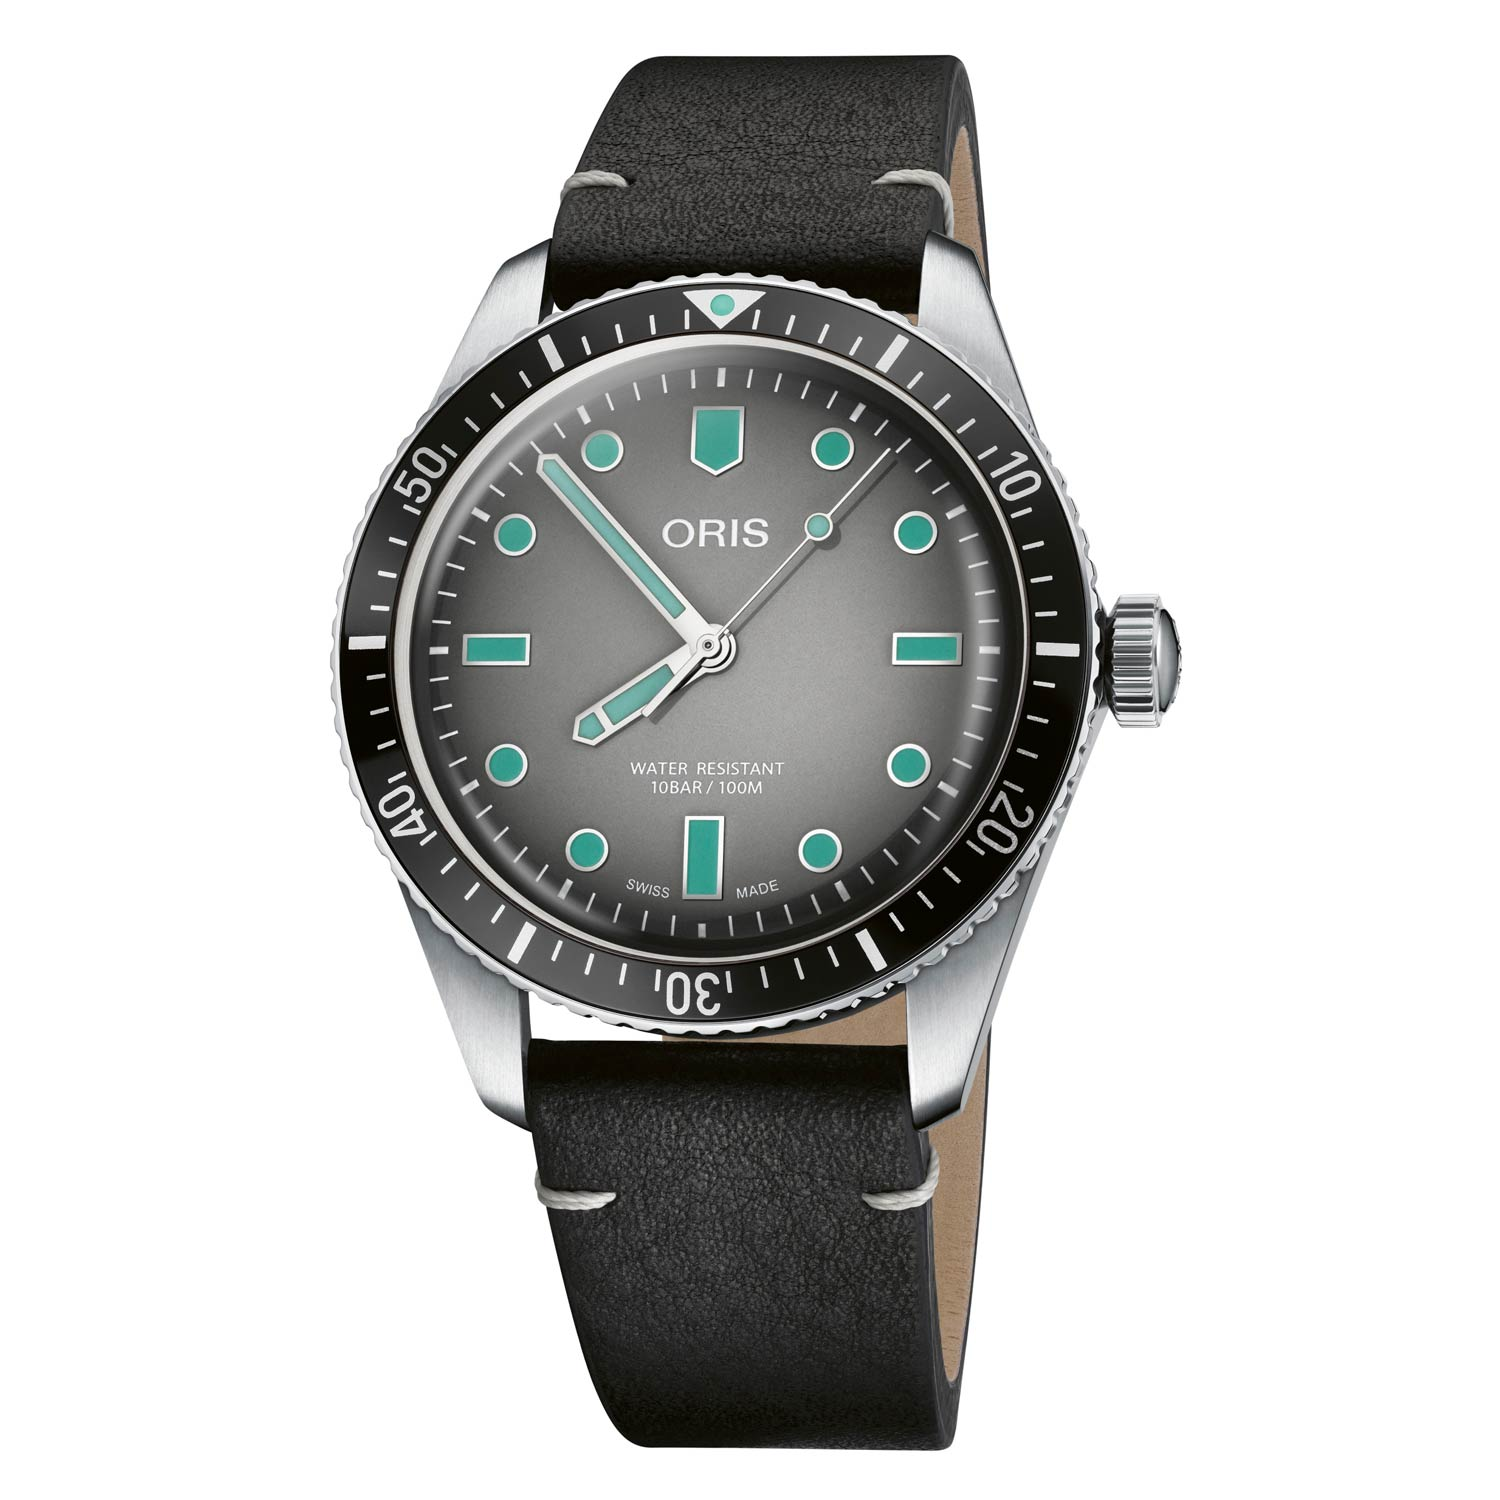 The grey gradient dial stands stark against the high-contrast turquoise lume applied to the watch's hands, hour markers, and triangle dot at 12 o'clock.